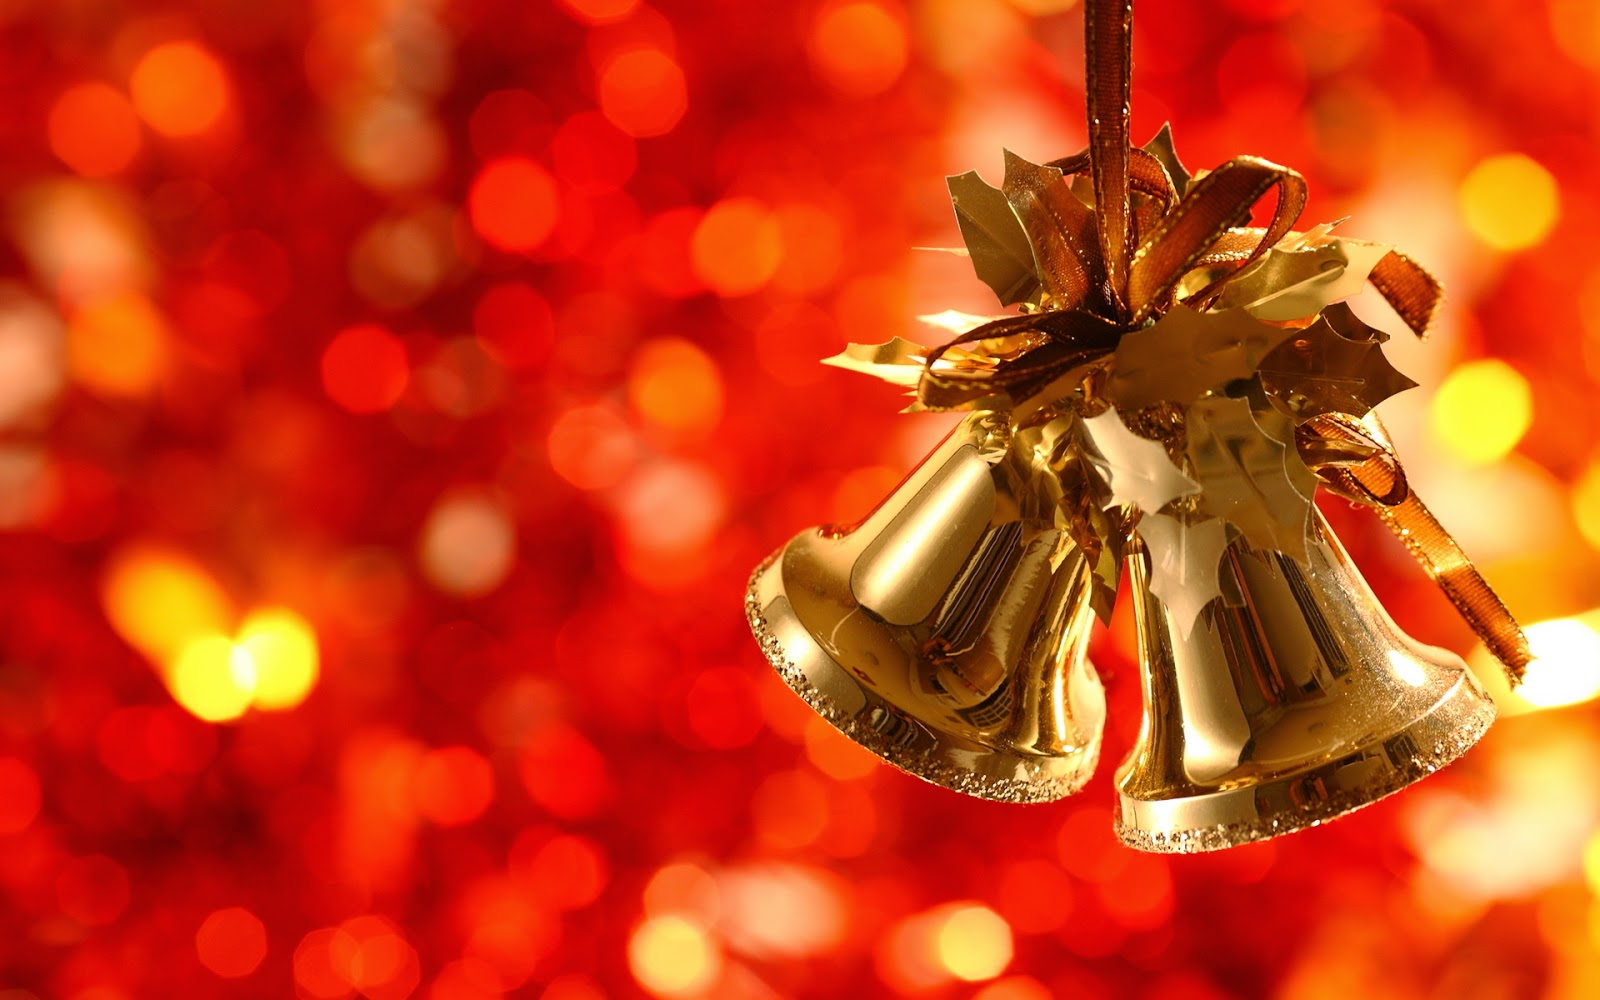 Christmas-bell-decorated-with-golden-ribbon-hd-wallpaper-for-festival-season-greetings-images.jpg